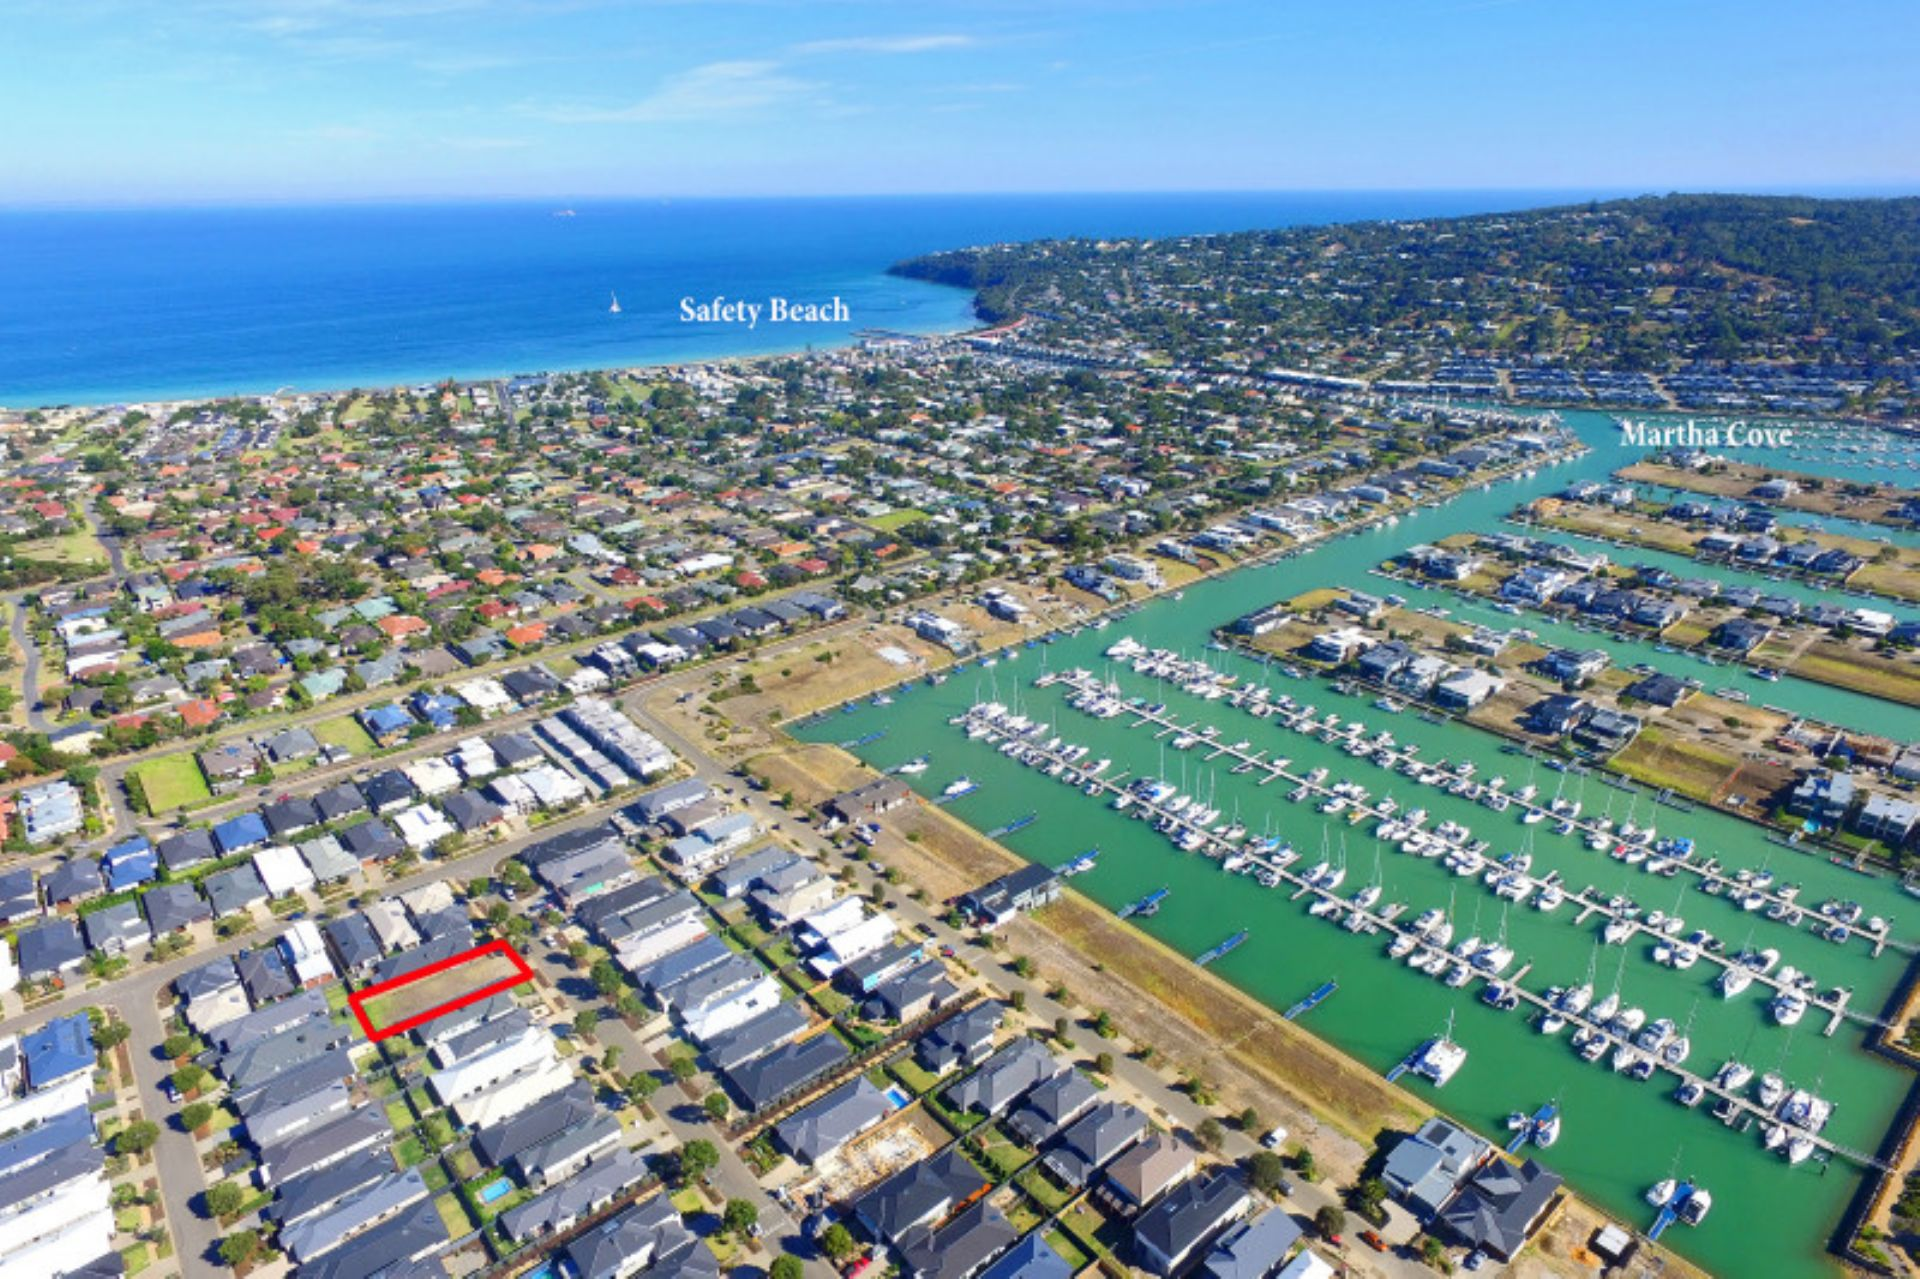 8 Seahaven Way, SAFETY BEACH, VIC, 3936 - Image